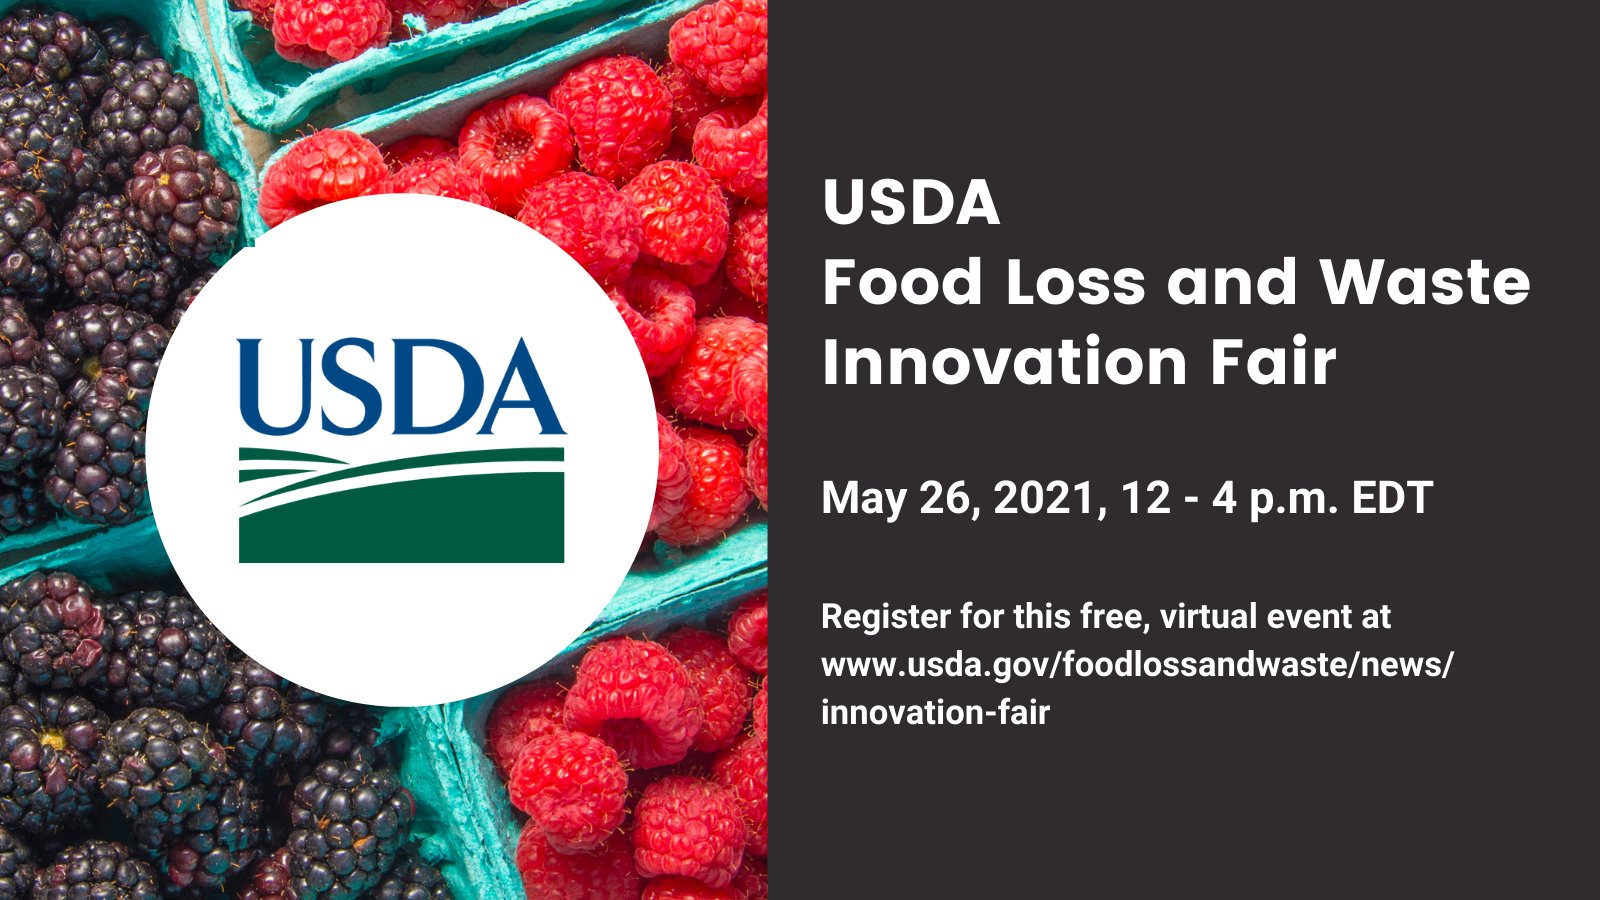 First USDA Food Loss and Waste Innovation Fair